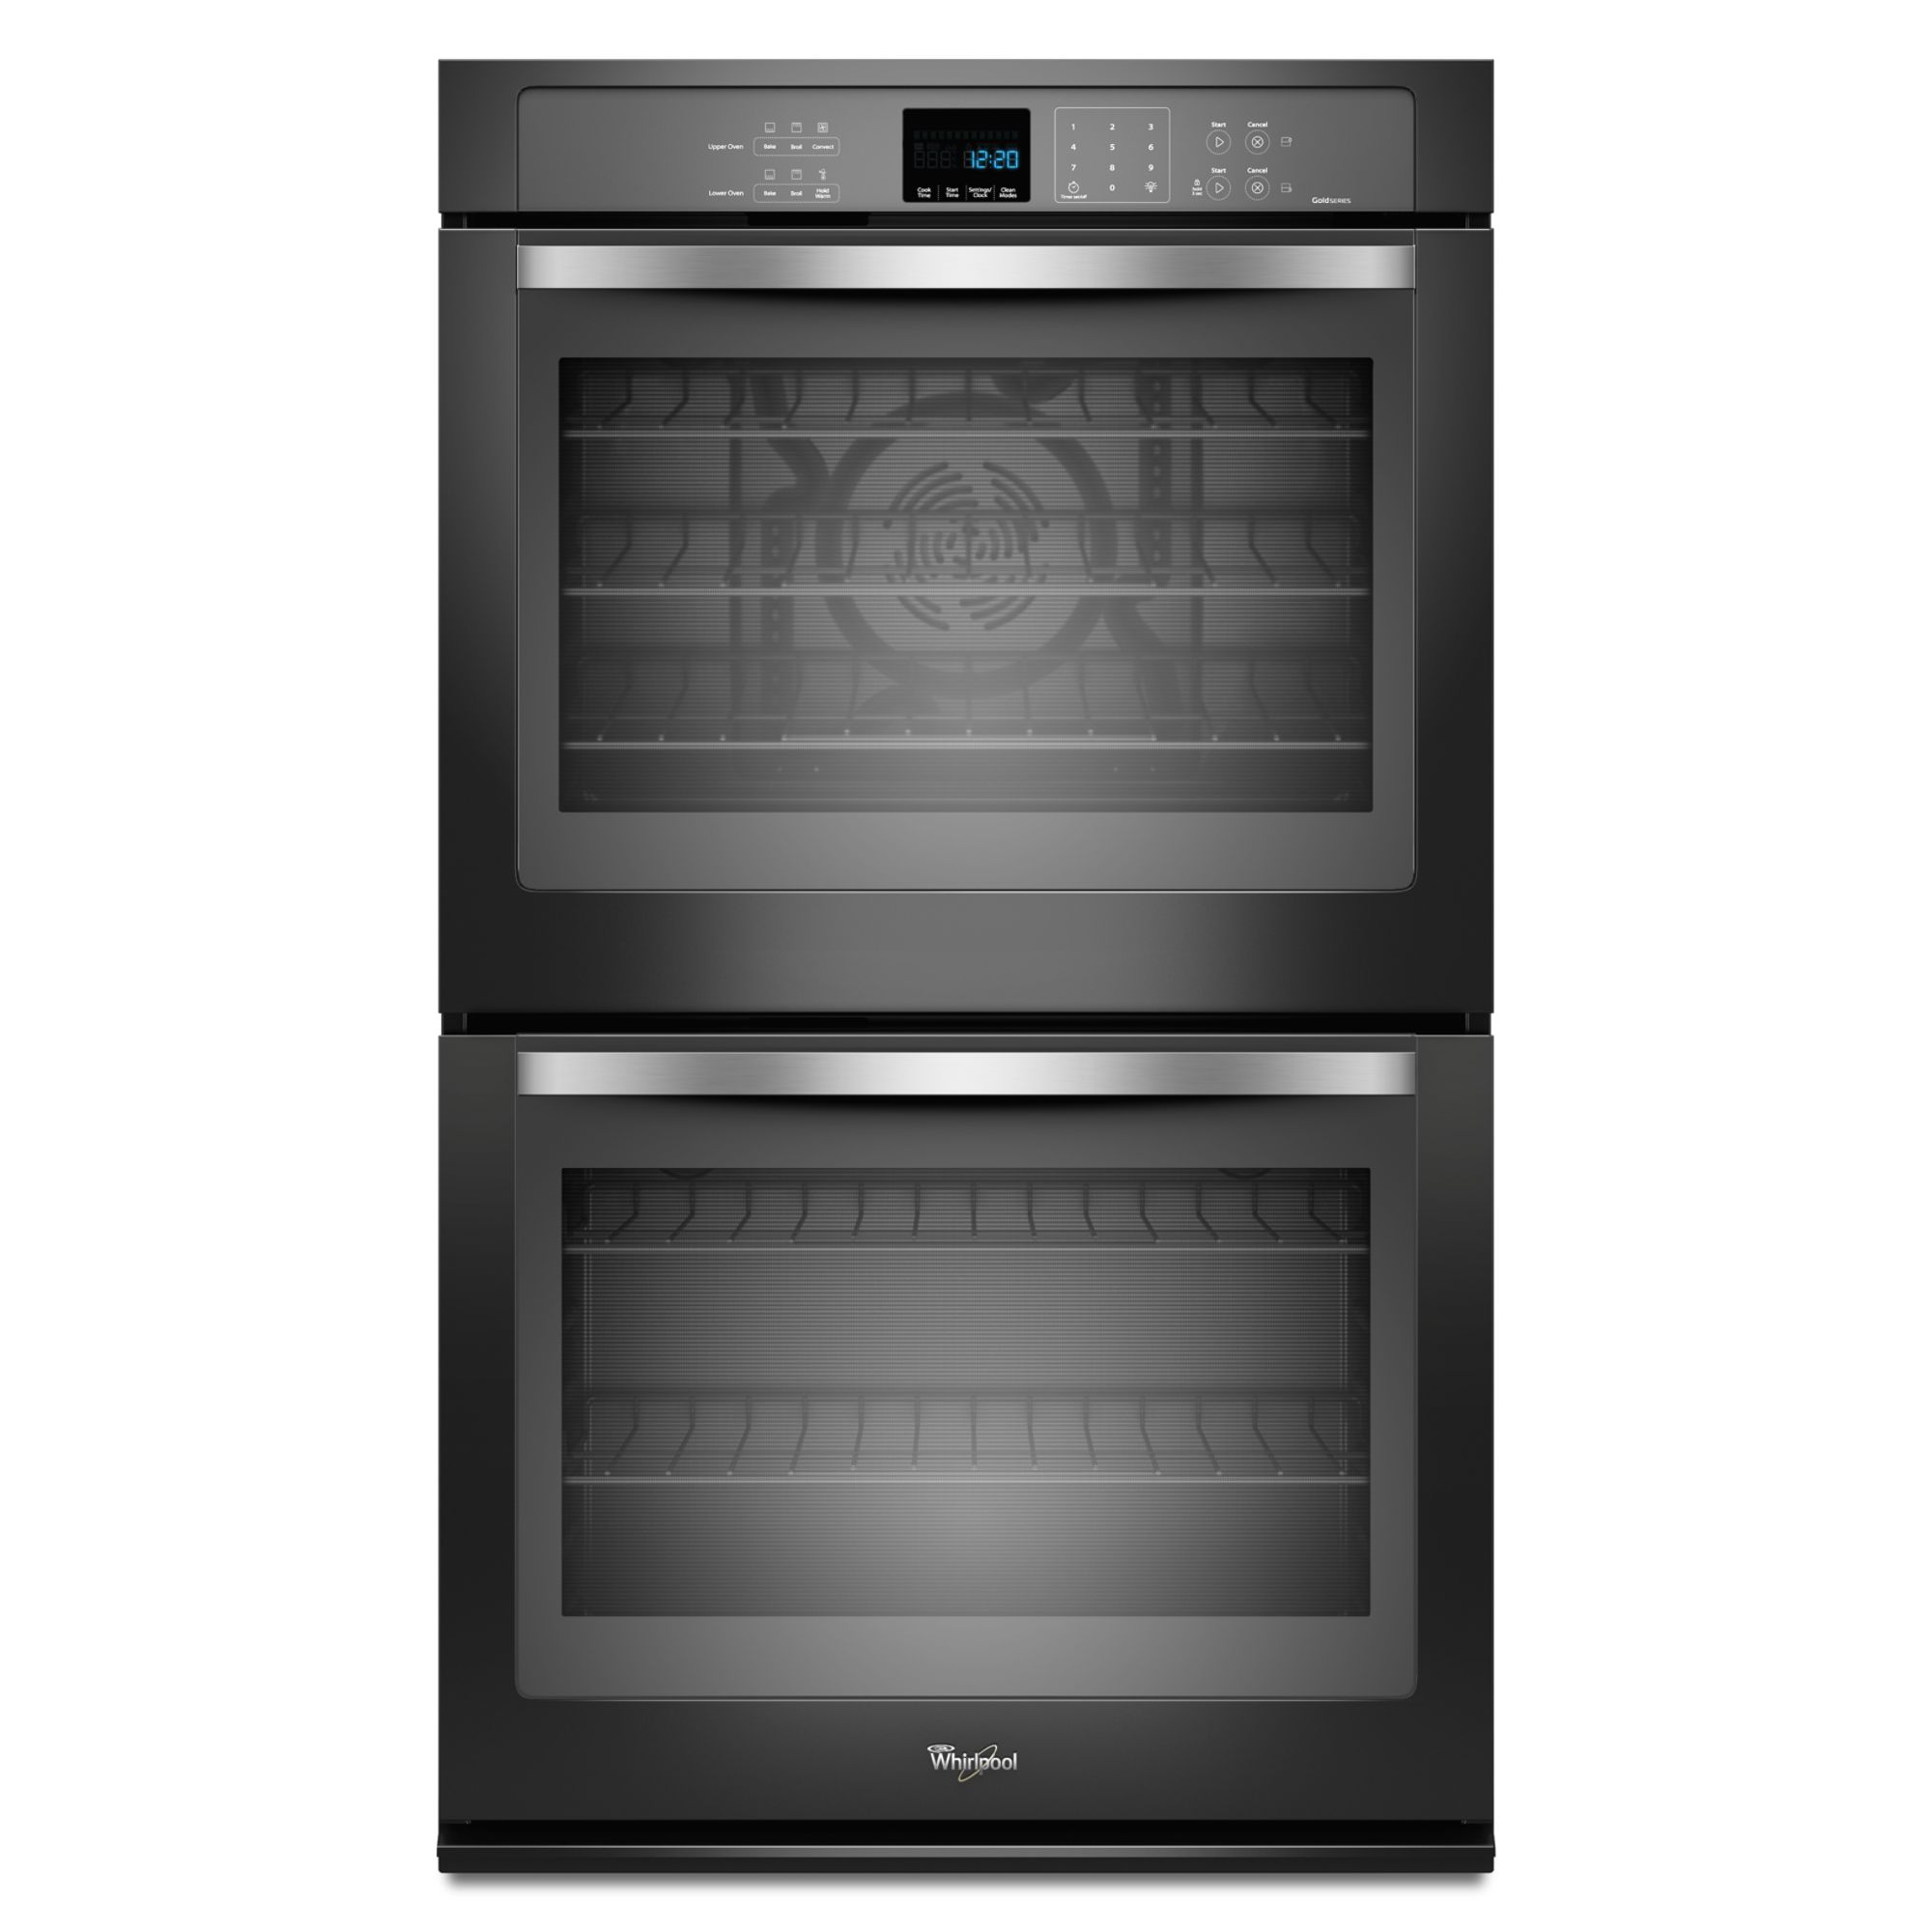 Whirlpool Gold Whirlpool WOD93EC0AE 30 Electric Double Wall Oven w/ TimeSavor  Ultra True Convection - Black Ice